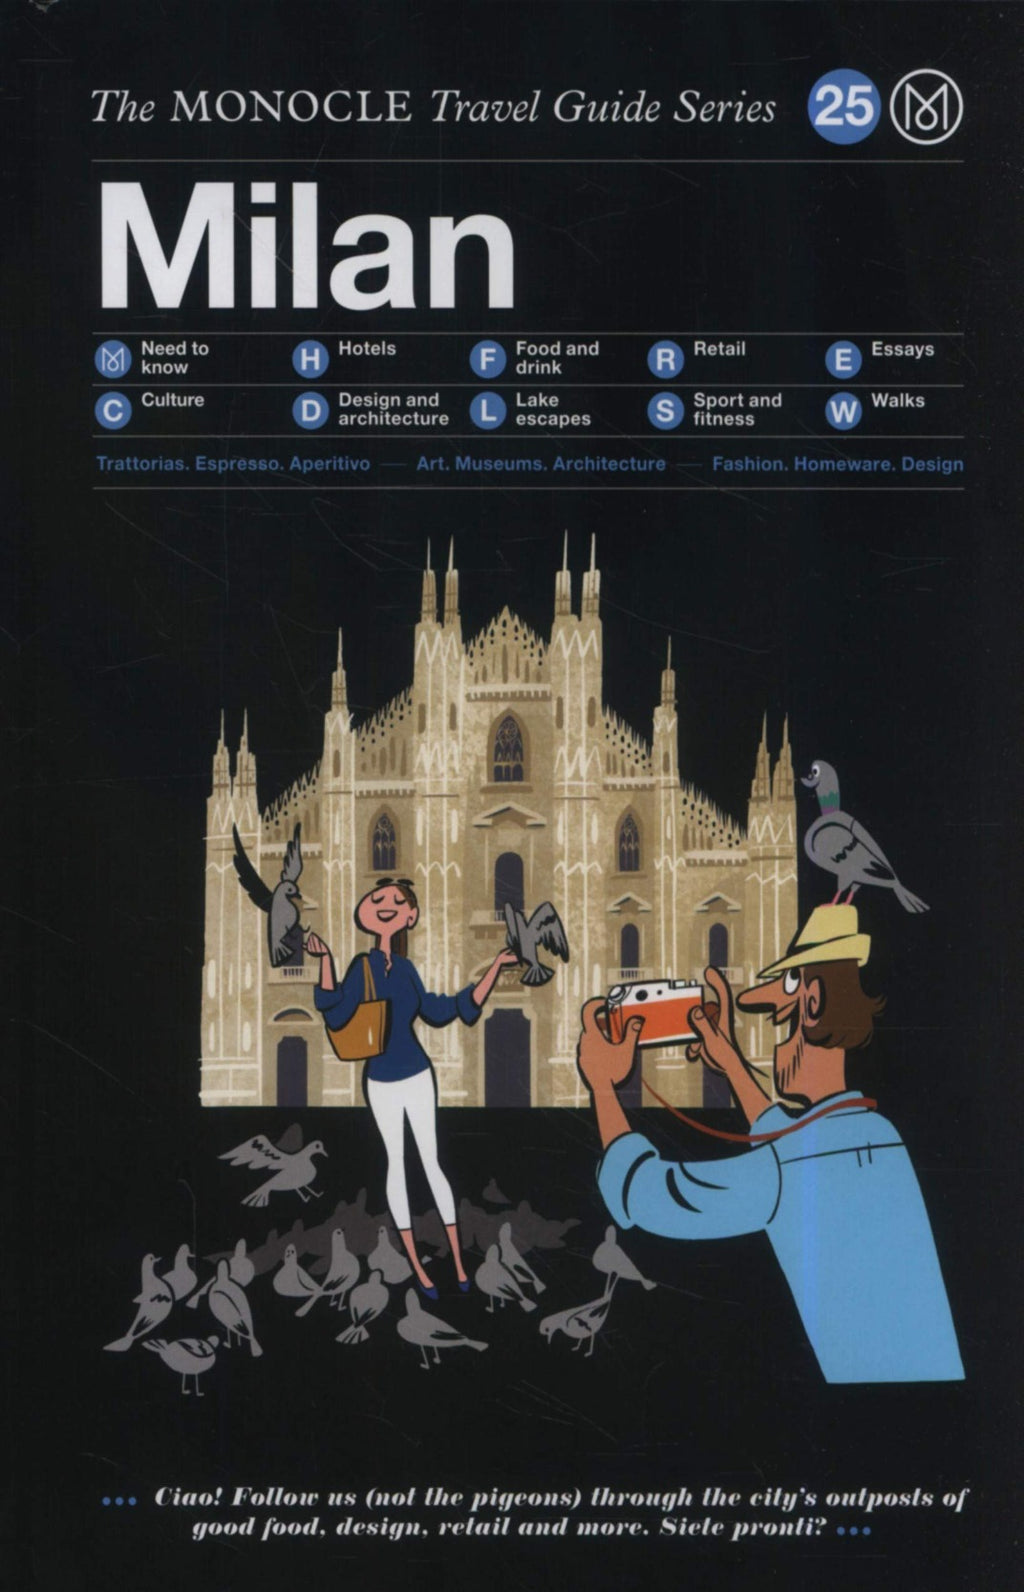 Milan - The Monocle Travel Guide Series 25